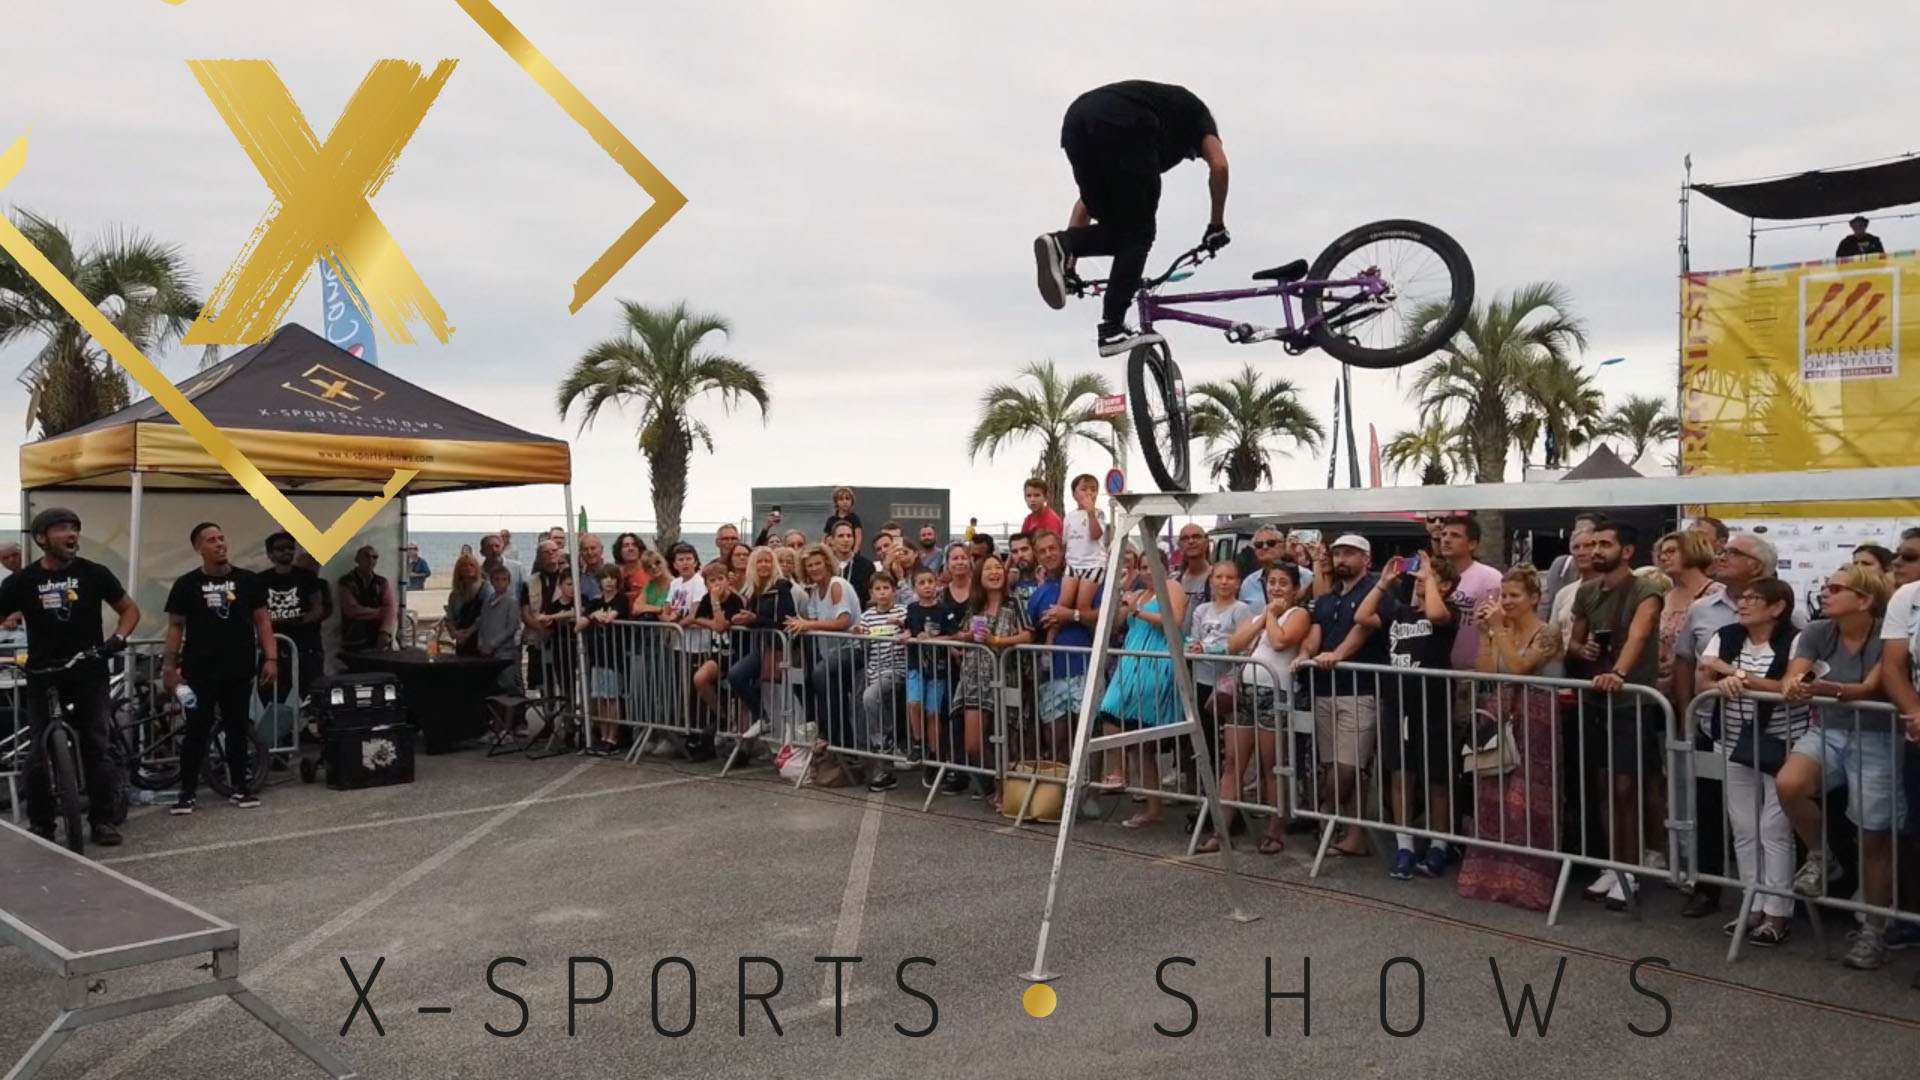 X-sports shows sur le Wheelz Festival 2019 Video